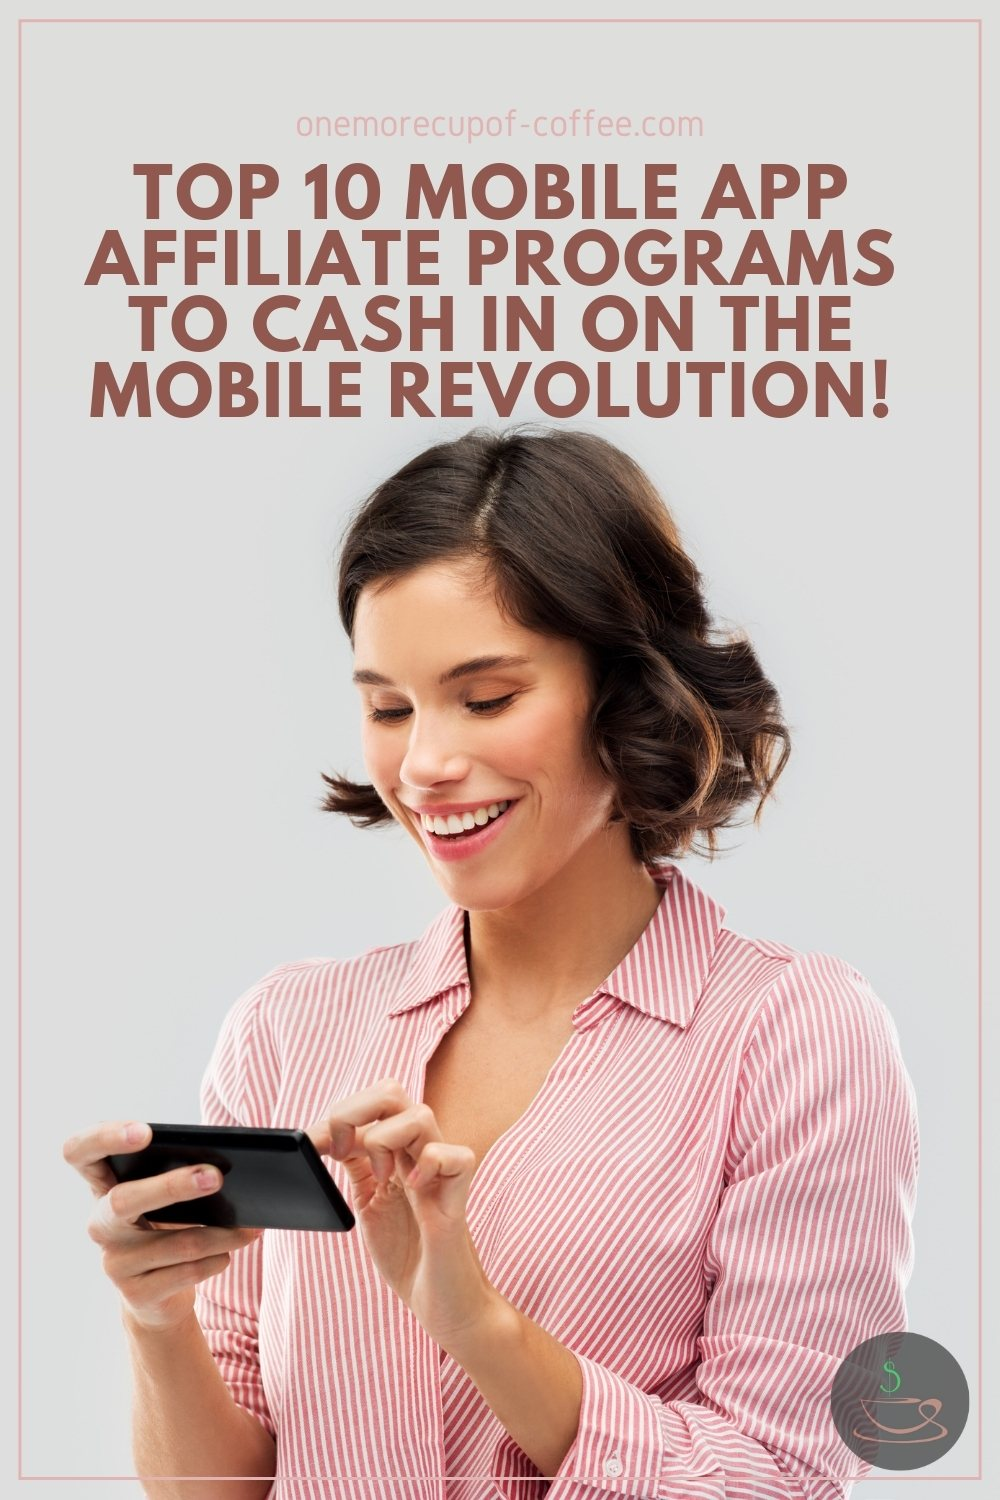 woman with curly short black hair in pink long sleeves top on her mobile phone, with text overlay